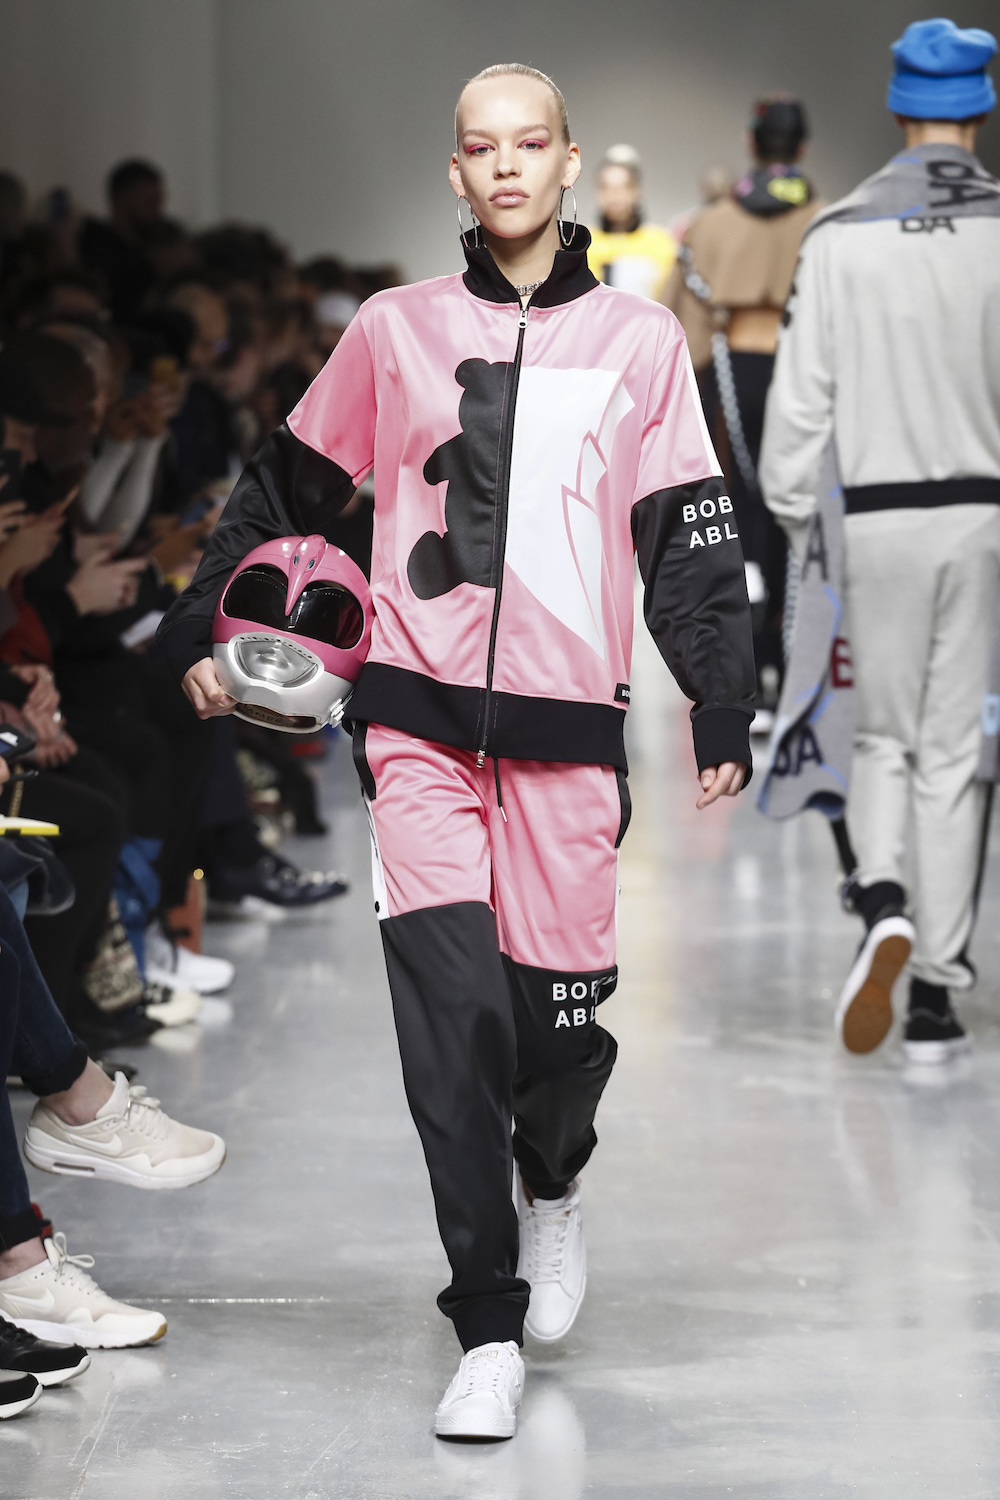 Bobby Abley Mighty Morphin Power Rangers - 1839466